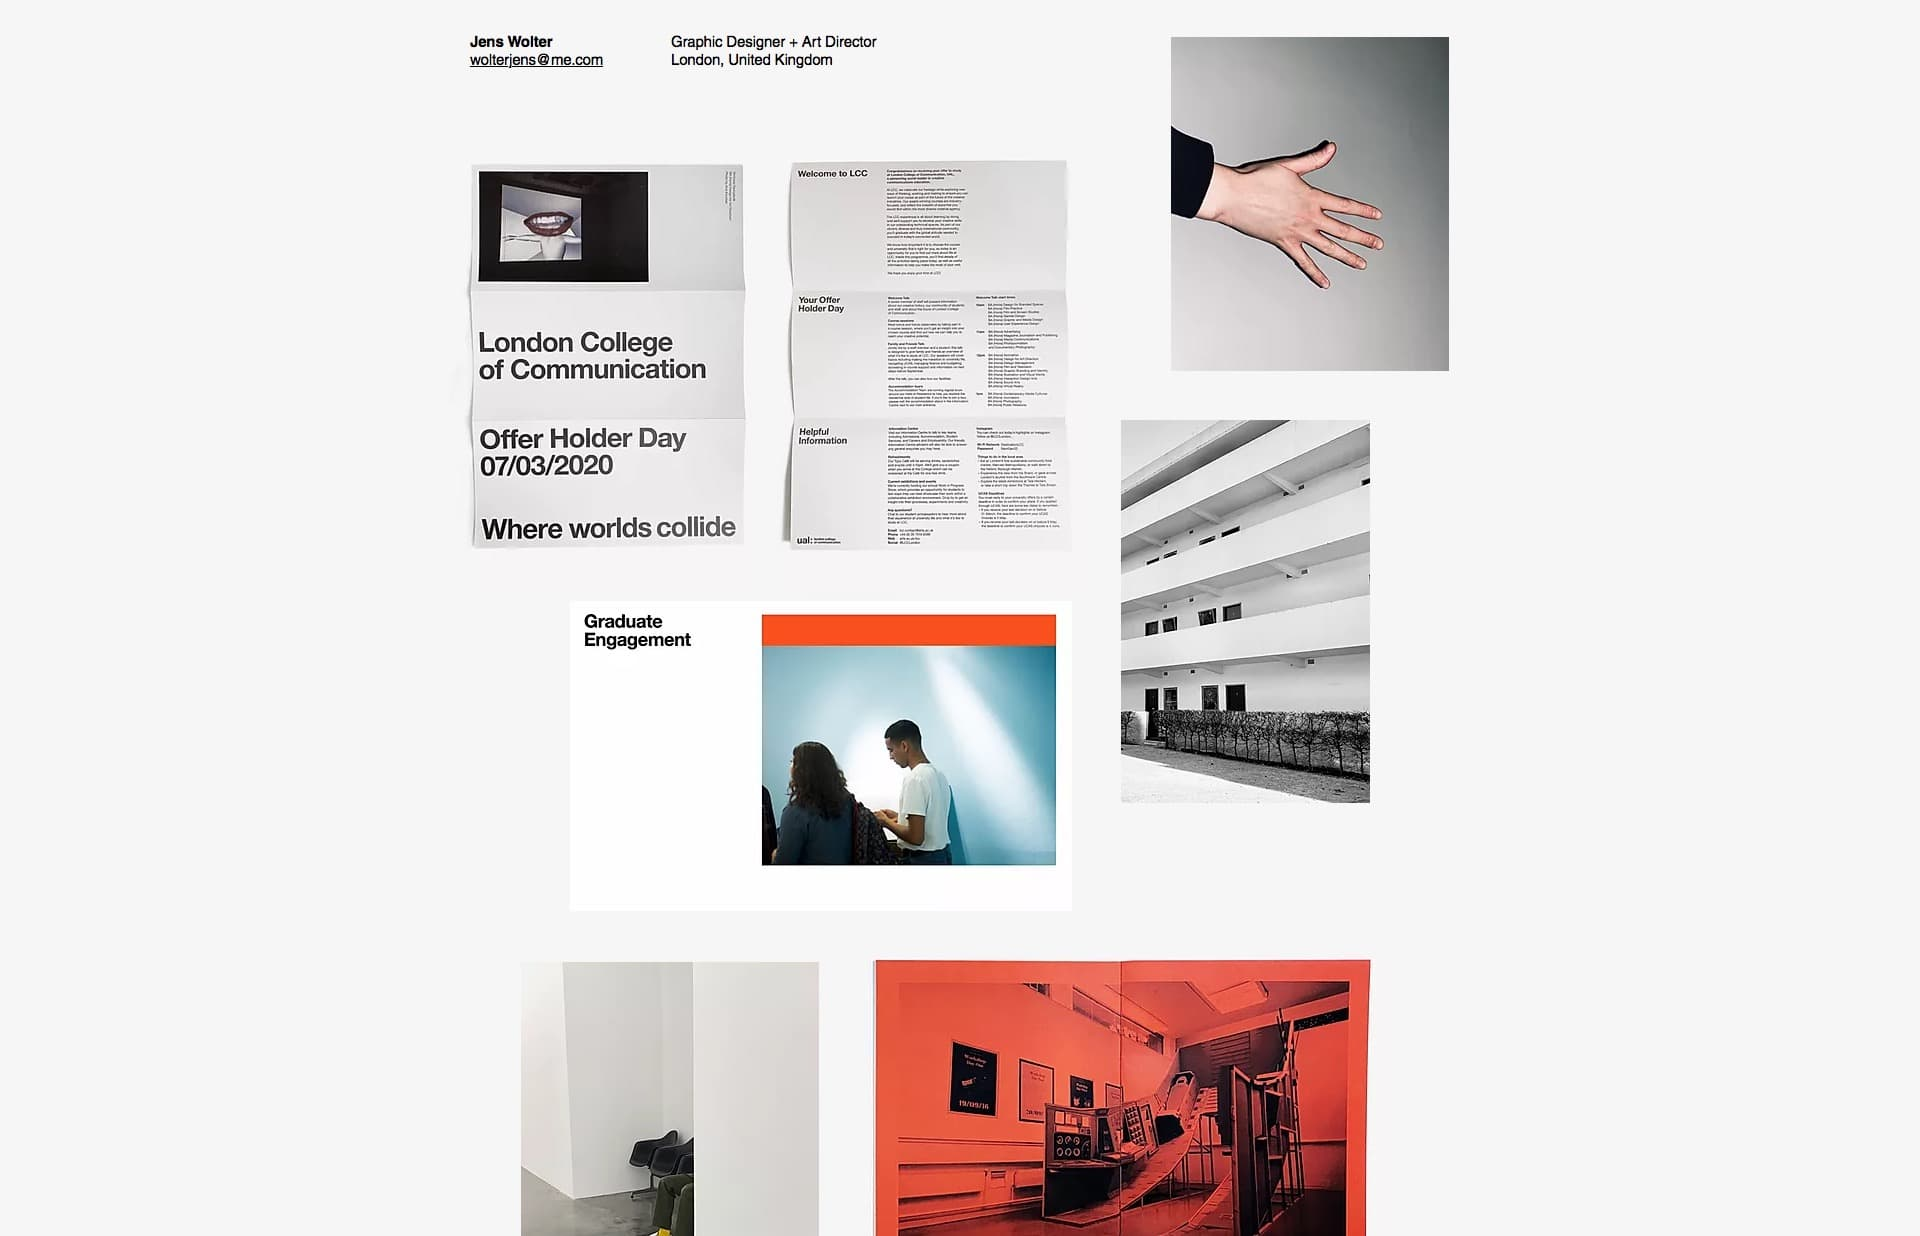 Screenshot of the website Jens Wolter, featured on The Gallery, a curated collection of minimal websites